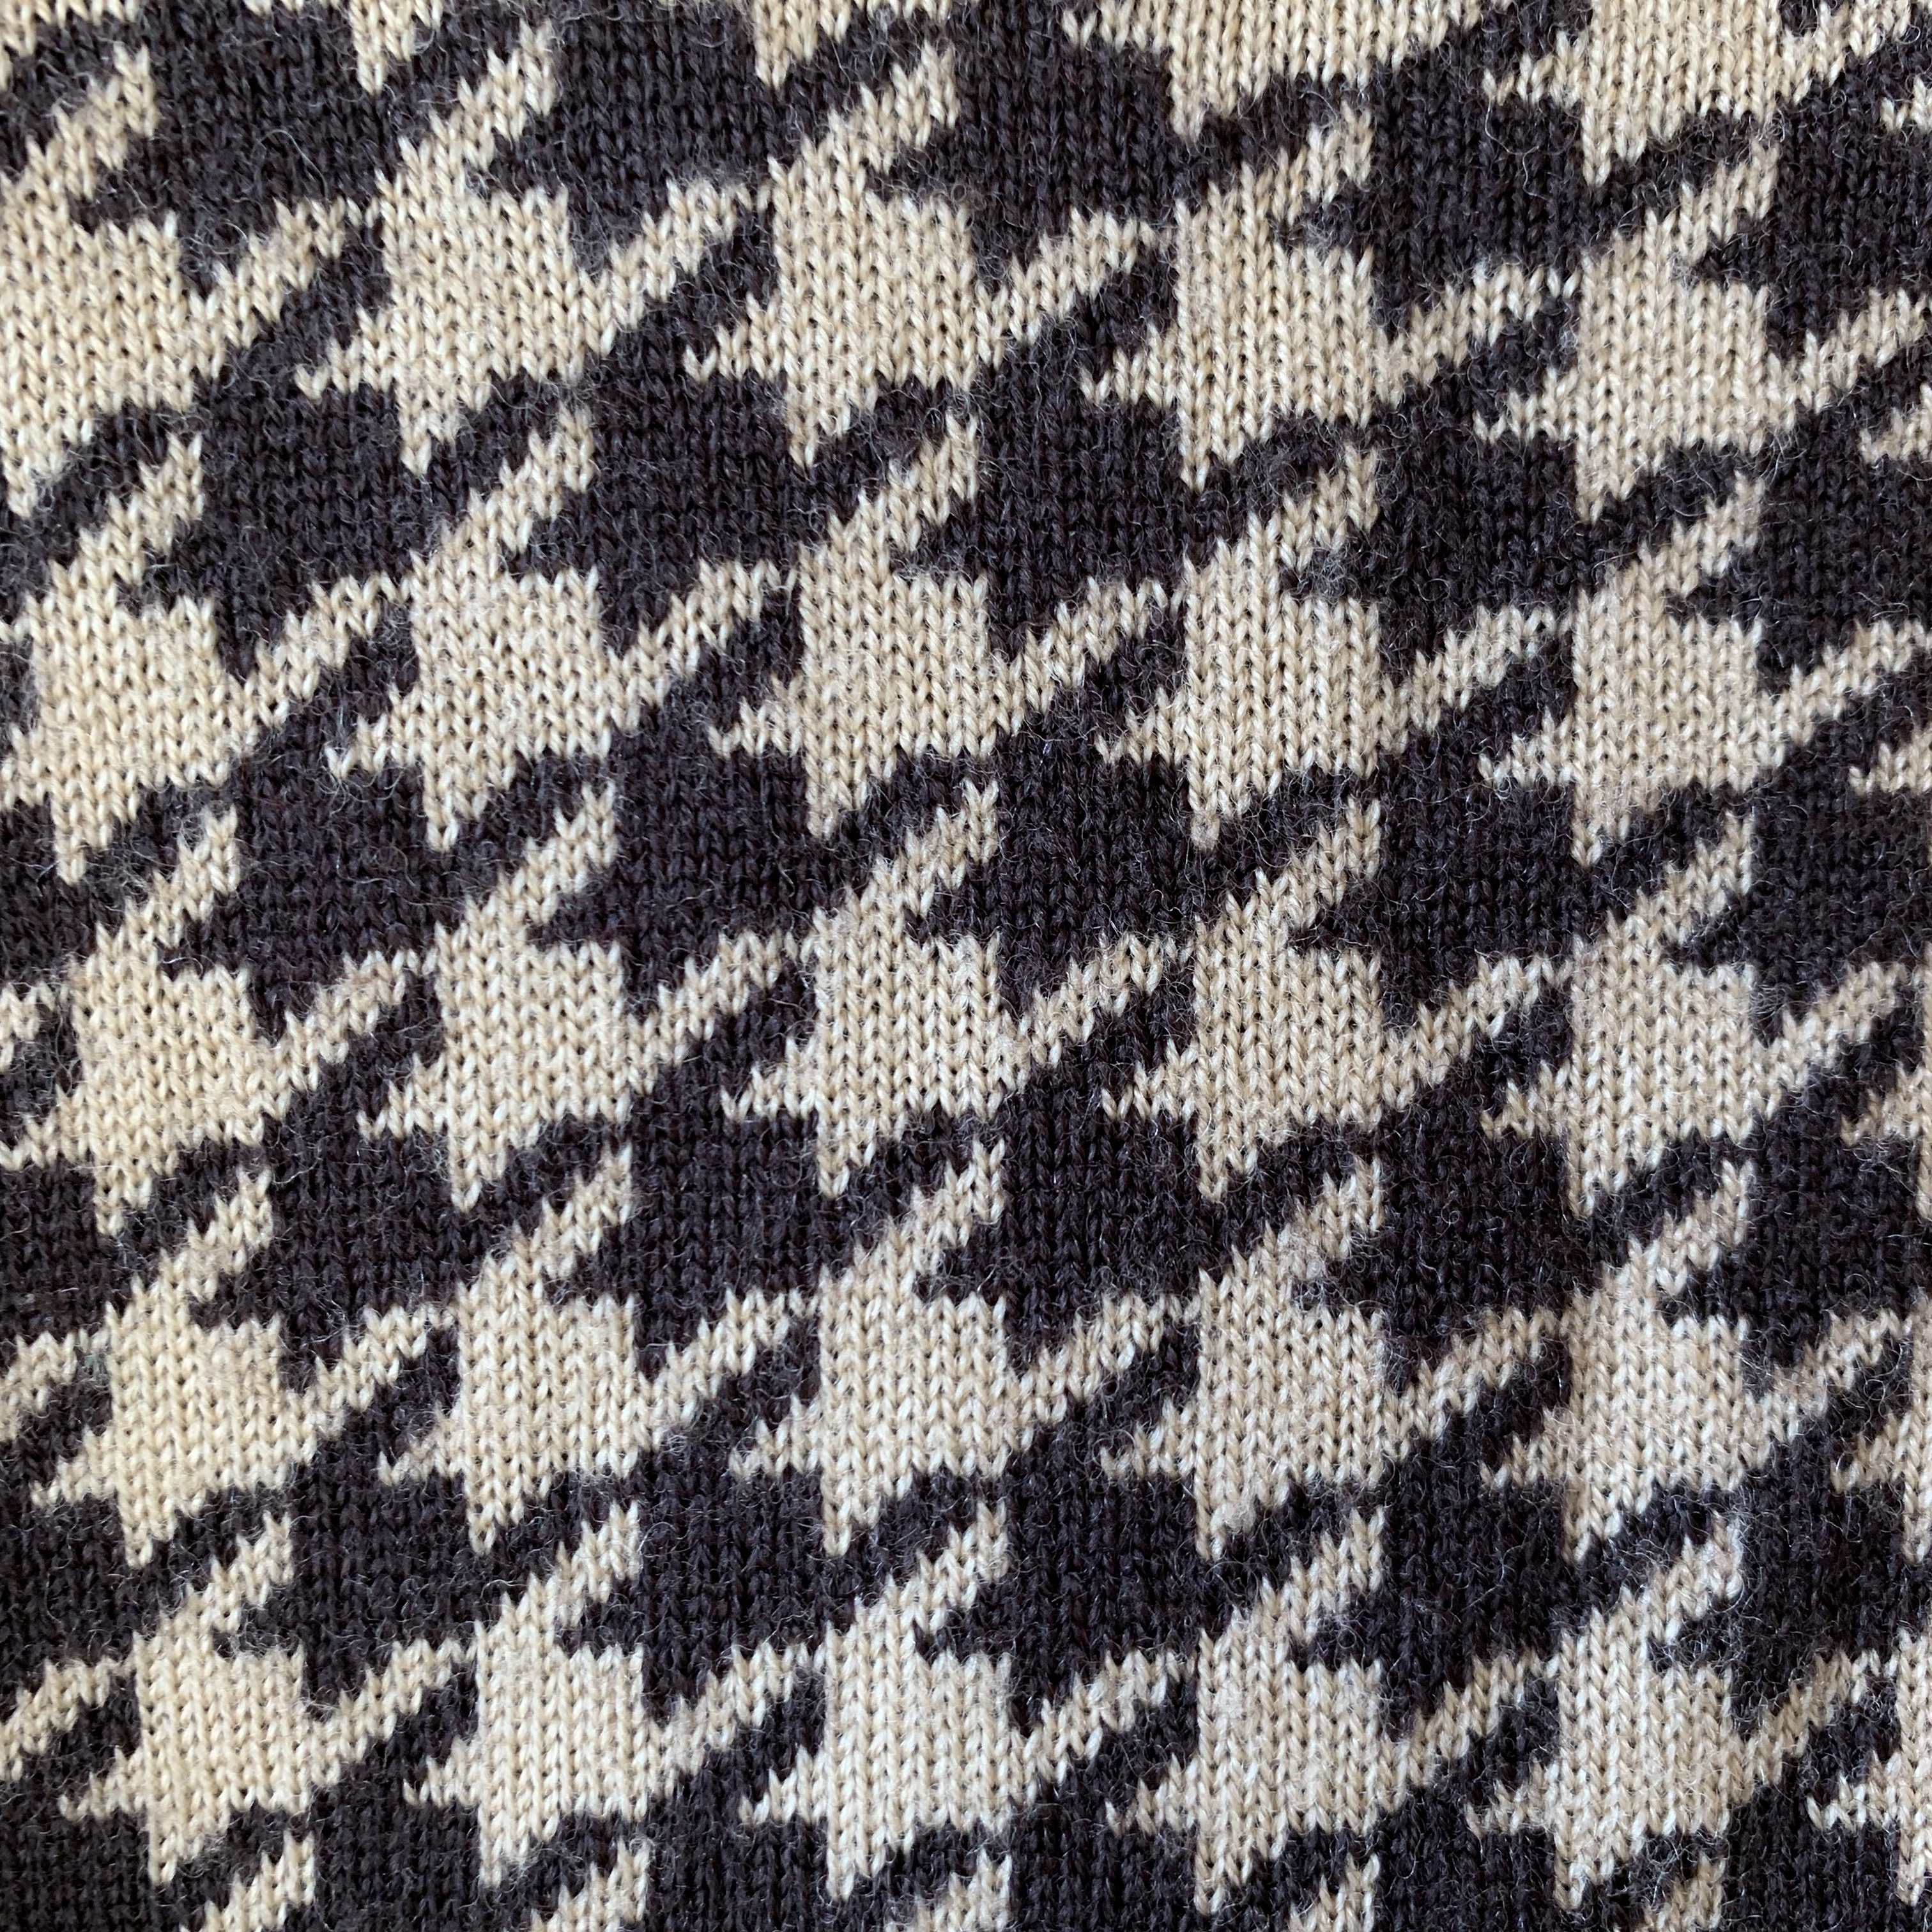 vintage Burberry knit sweater